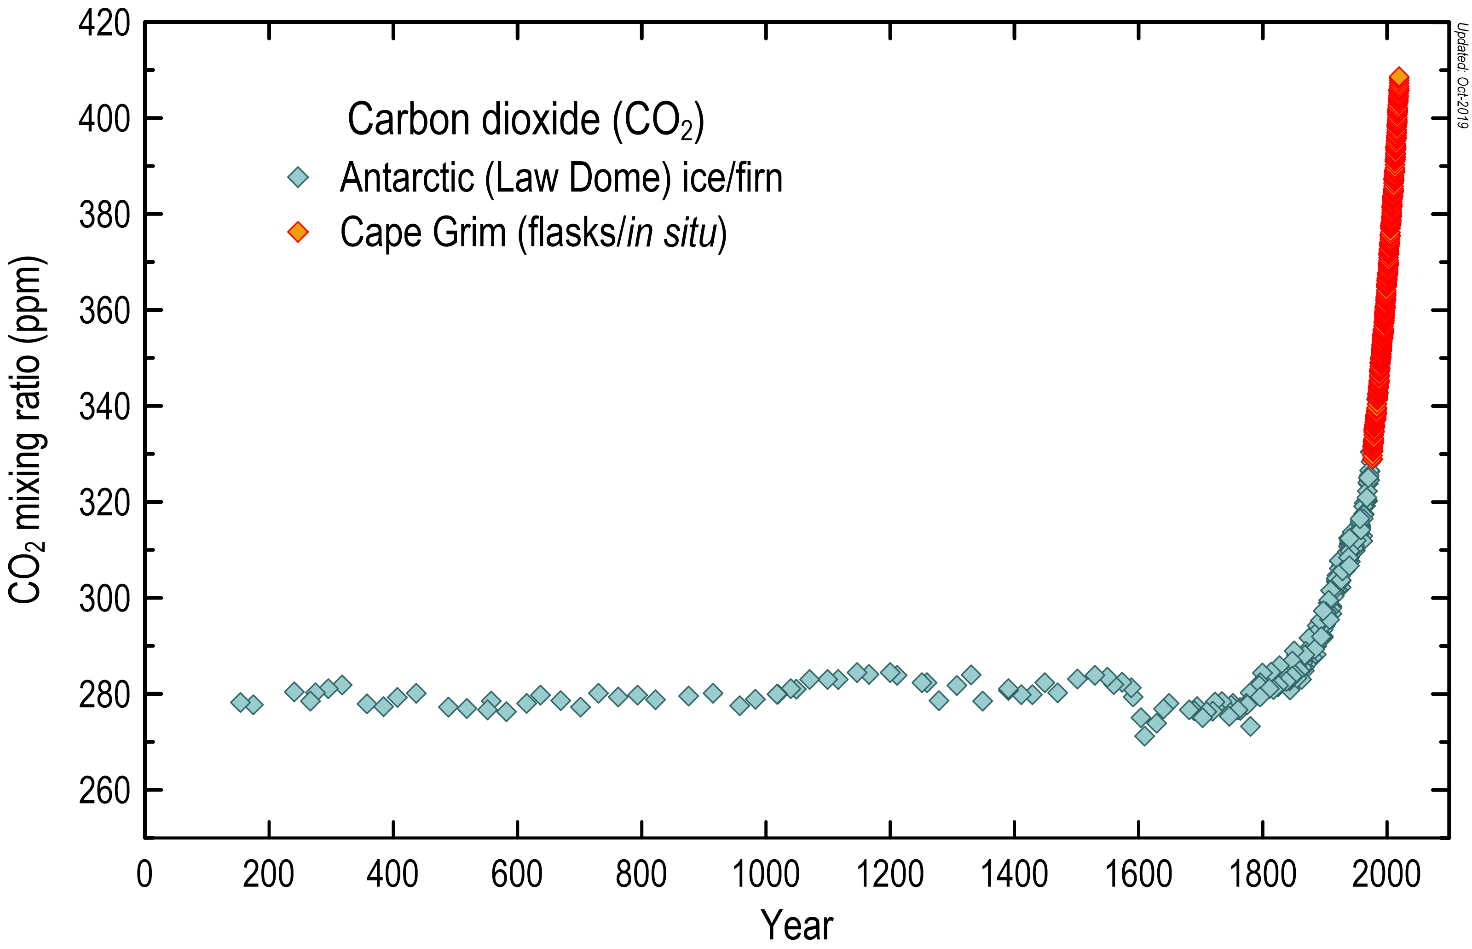 Graph showing atmospheric carbon dioxide concentrations (in ppm) over the last 2000 years